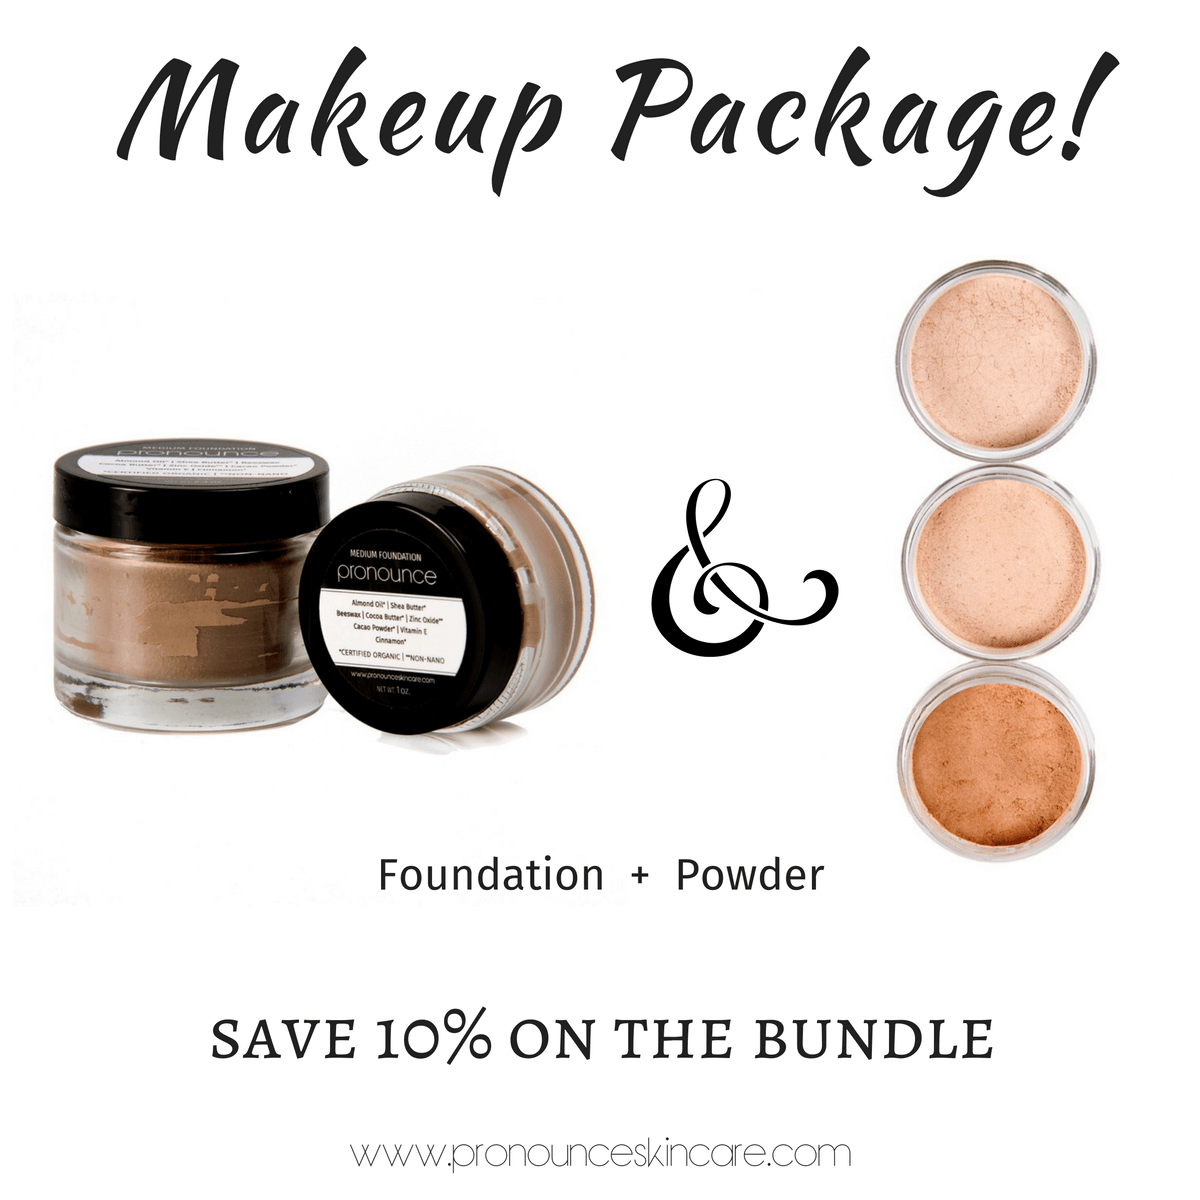 makeup-package-facial-foundation-facial-powder-pronounce-skincare-apothecary